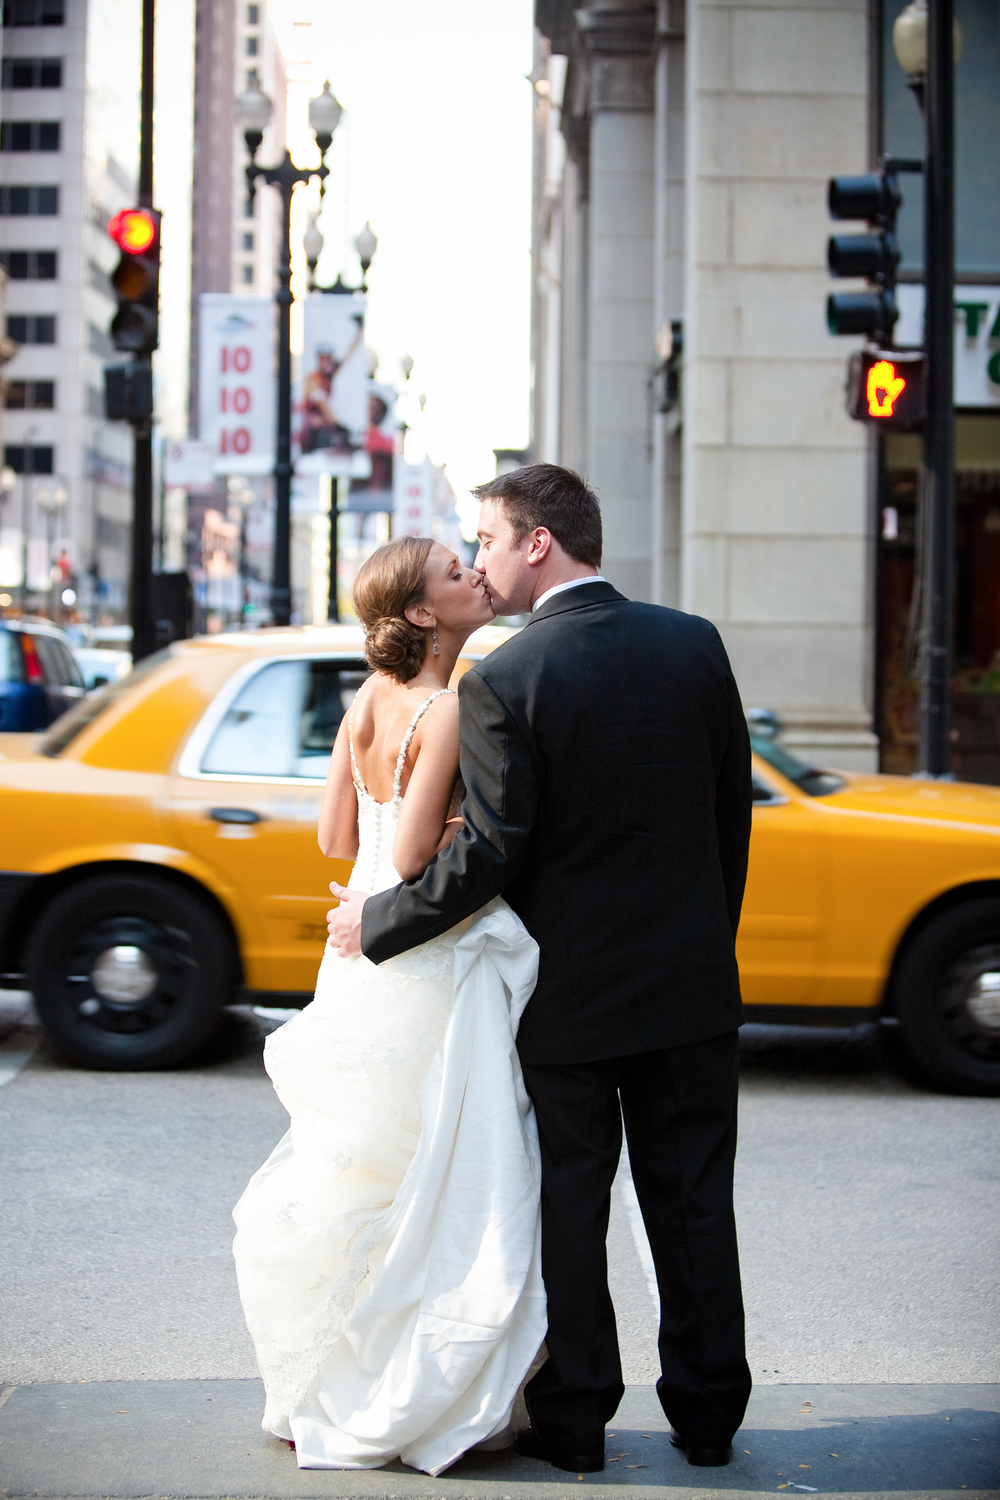 Chicago_wedding_photography_misty_winter_photography_top_best_003.jpeg